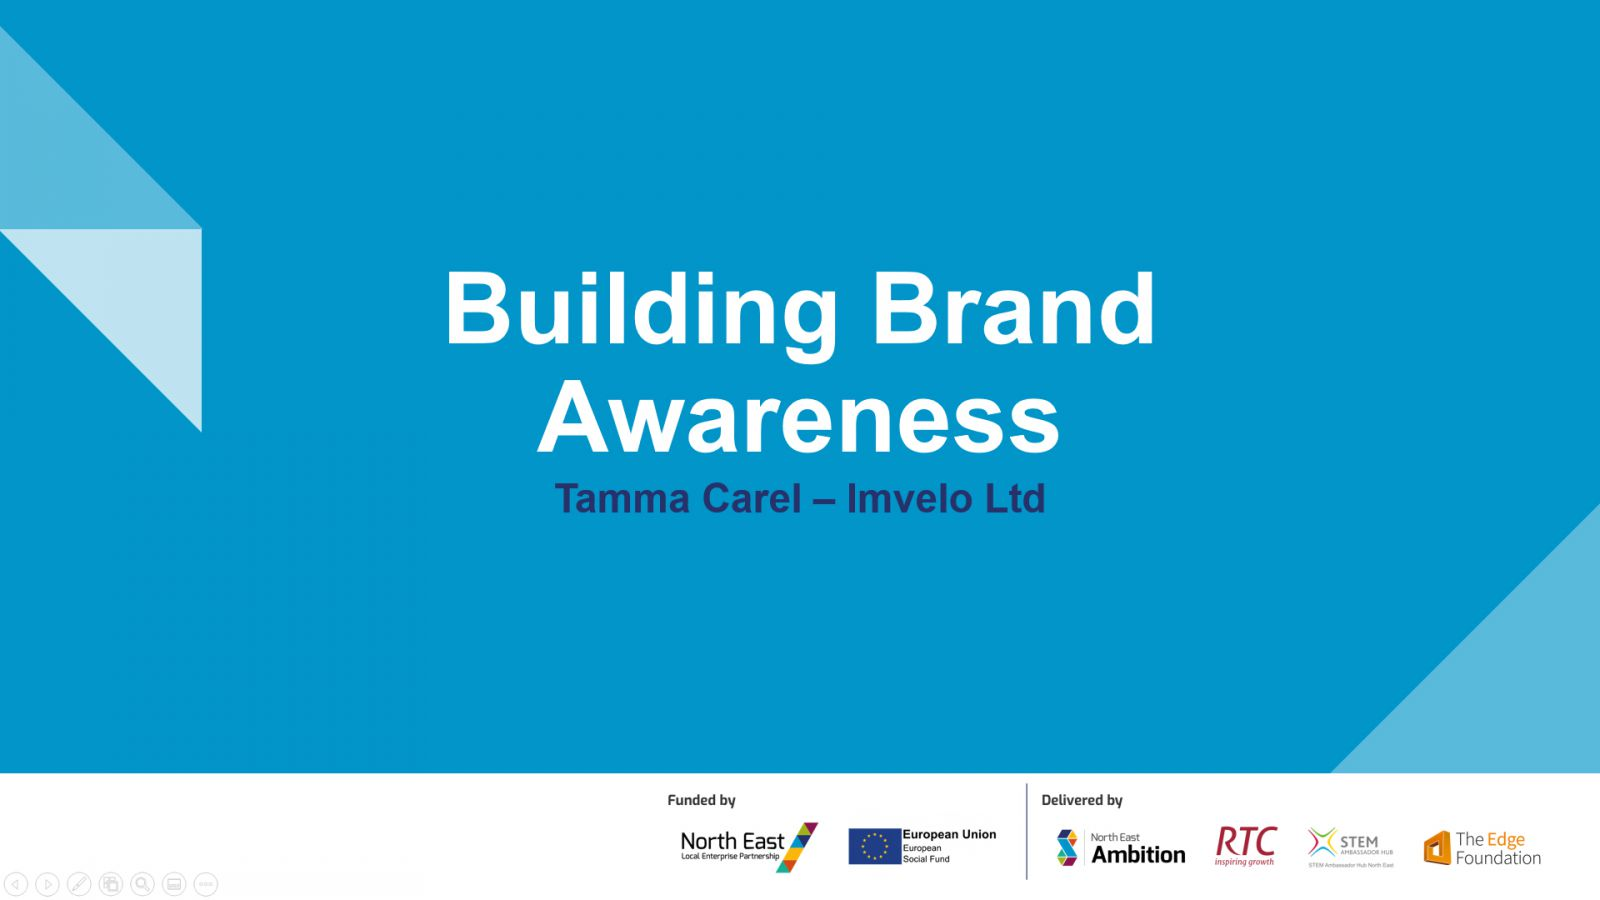 Working with young people can build brand awareness - Tamma Carel from Imvelo